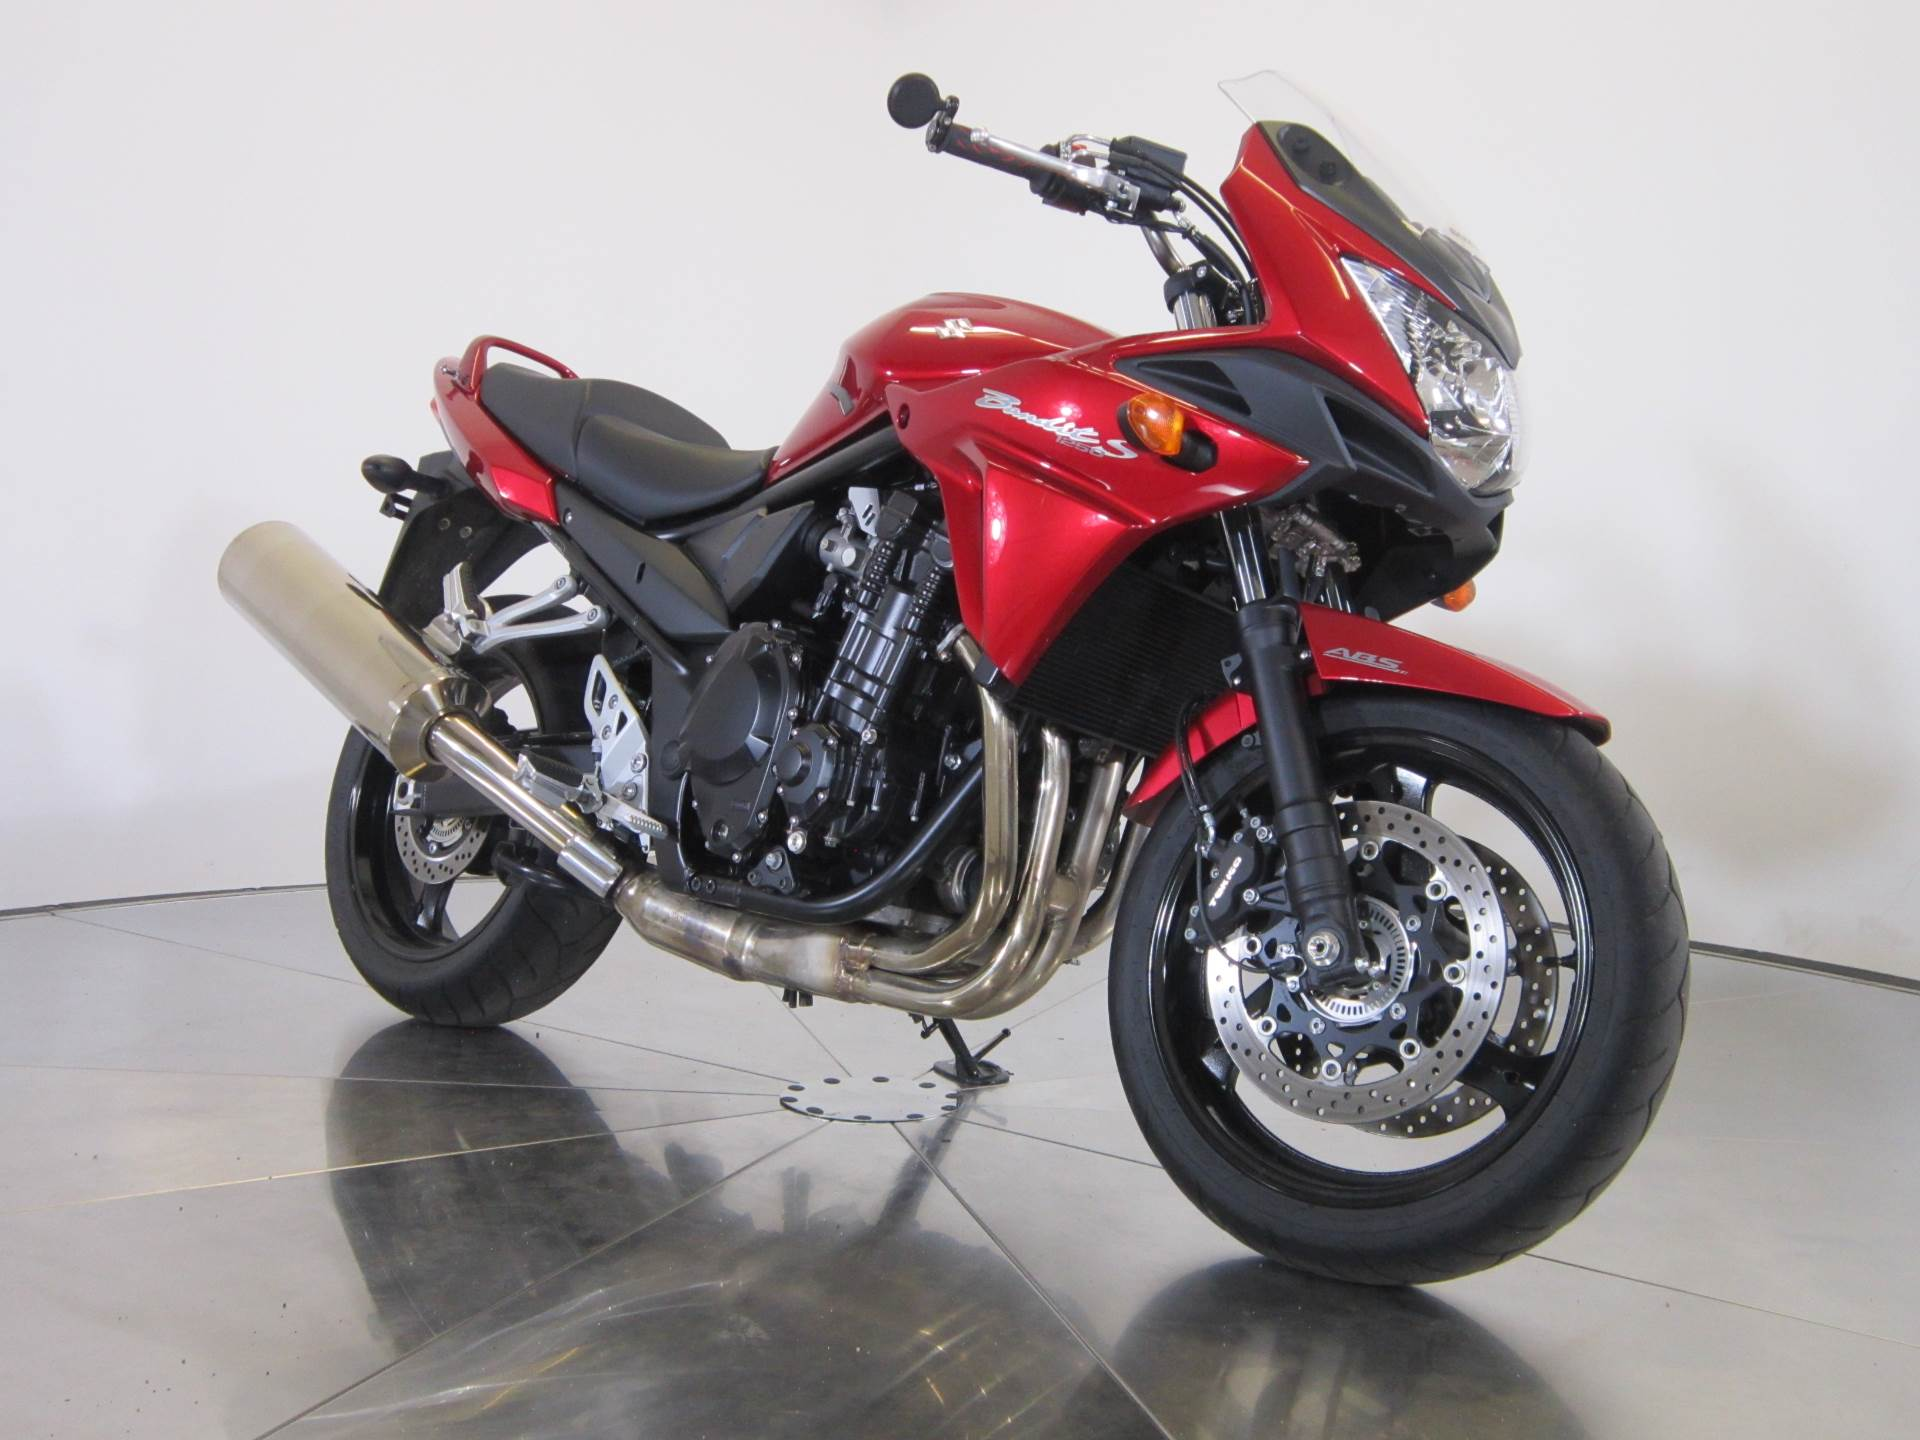 2016 Suzuki Bandit 1250S ABS in Greenwood Village, Colorado